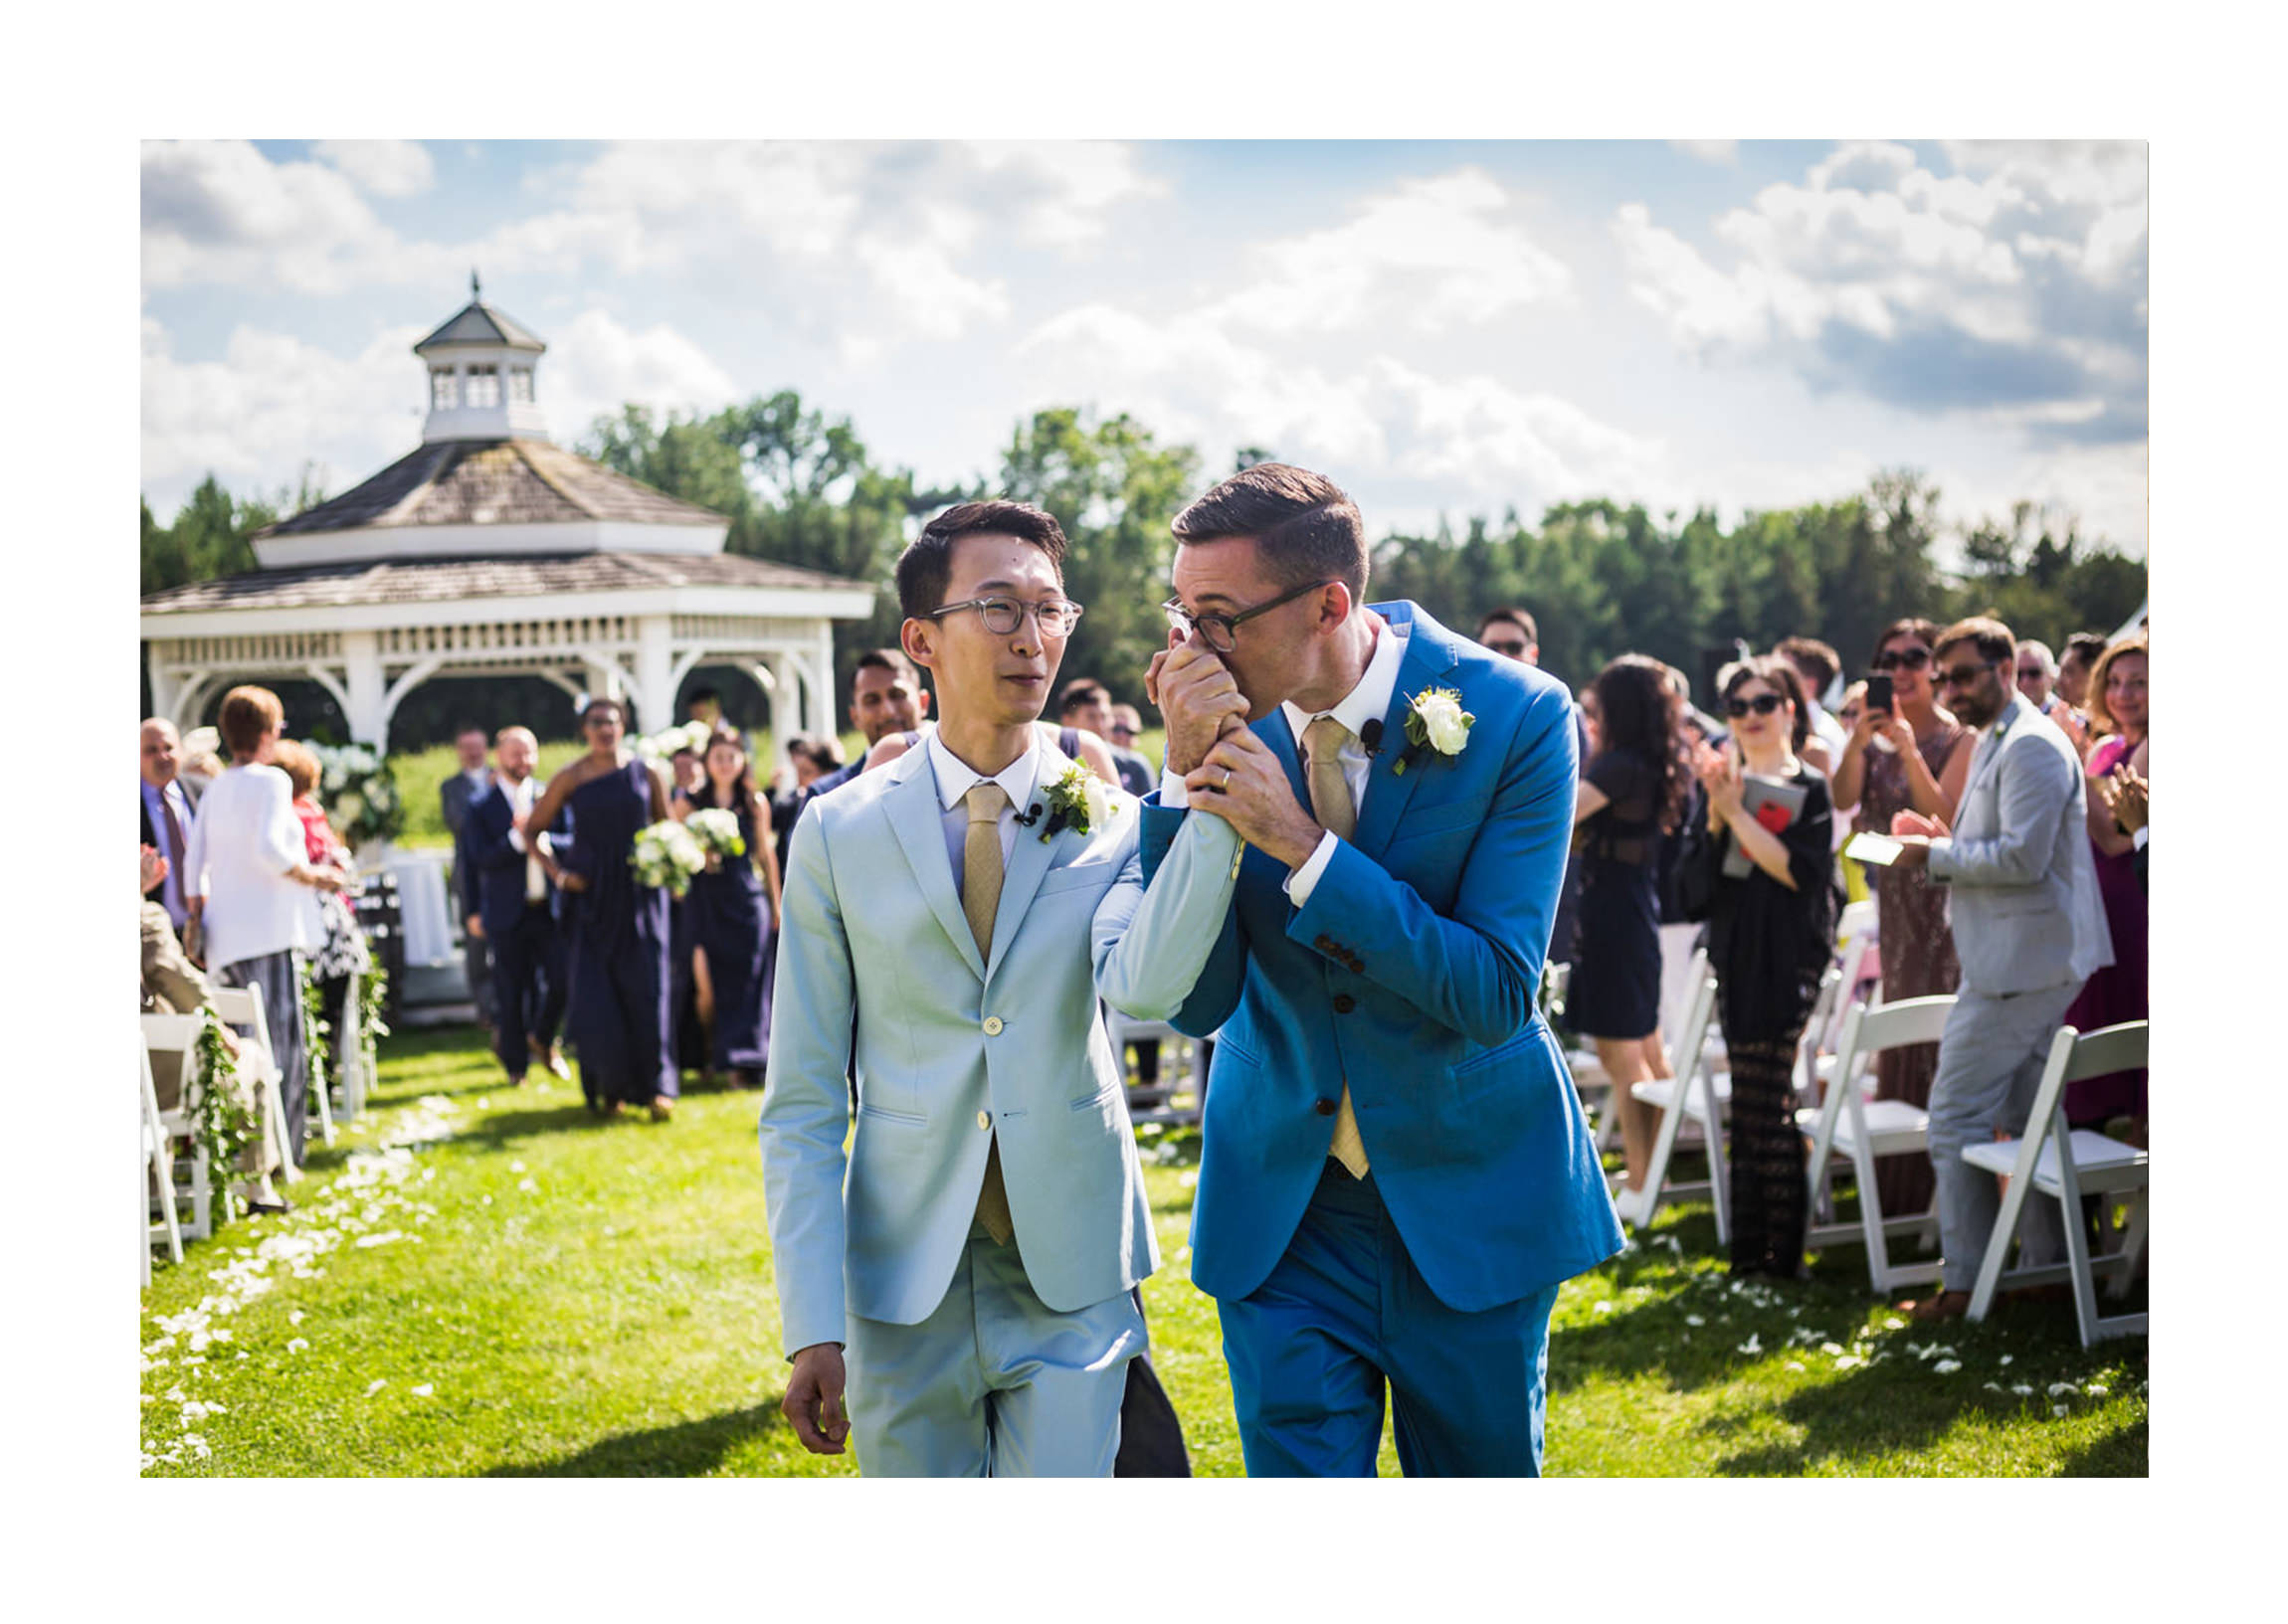 VANCOUVER LGBTQ WEDDING PHOTOGRAPHER – JOHN BELLO